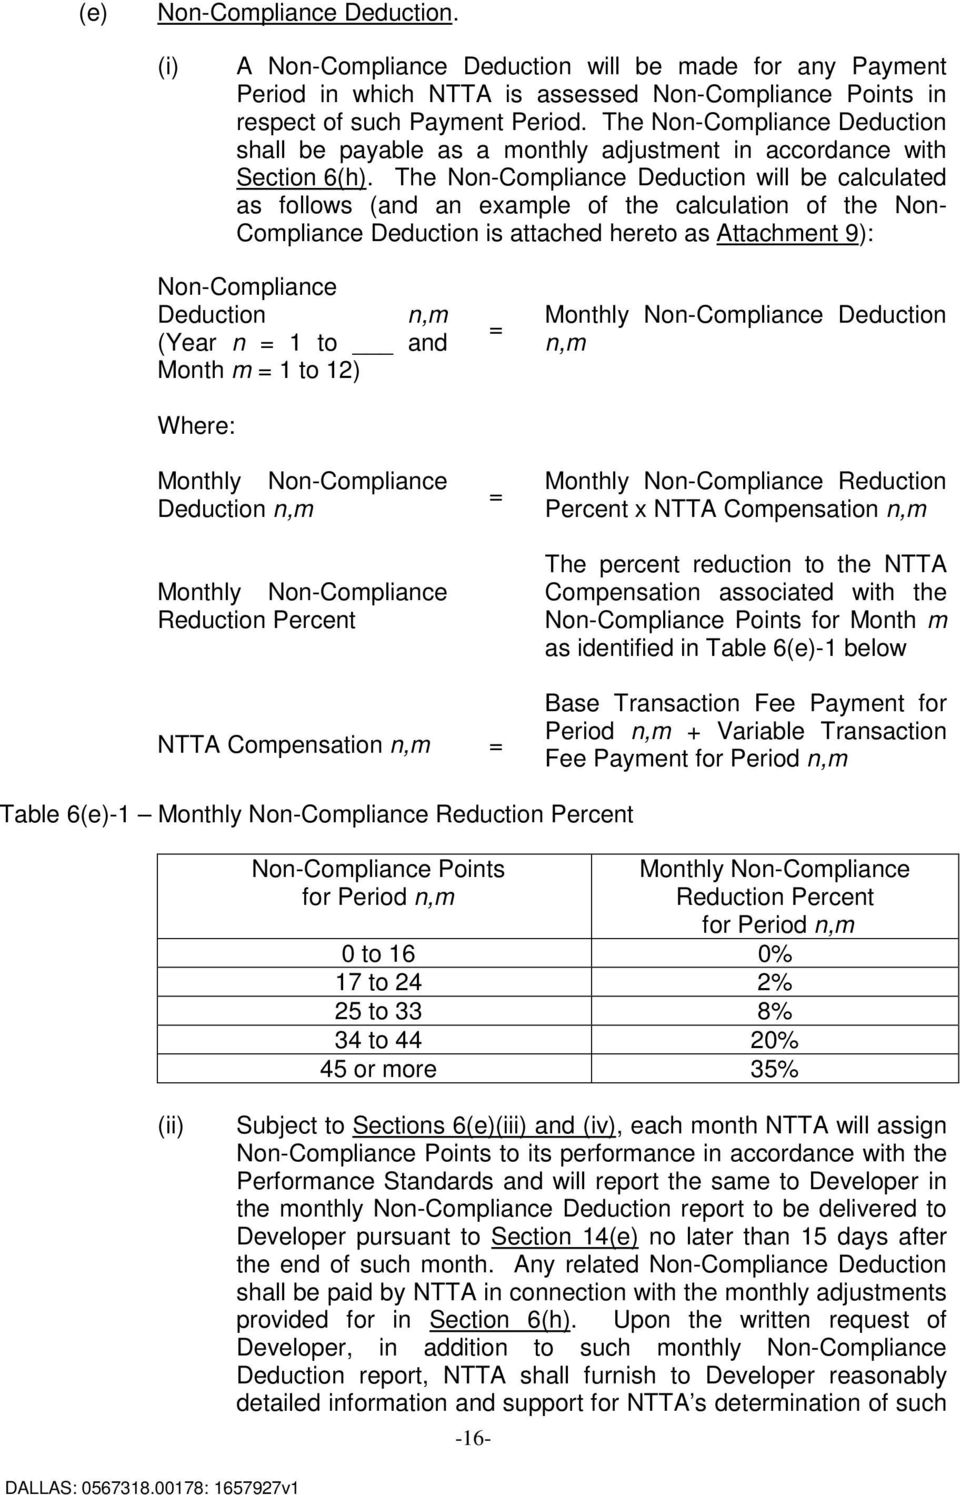 The Non-Compliance Deduction will be calculated as follows (and an example of the calculation of the Non- Compliance Deduction is attached hereto as Attachment 9): Non-Compliance Deduction n,m (Year